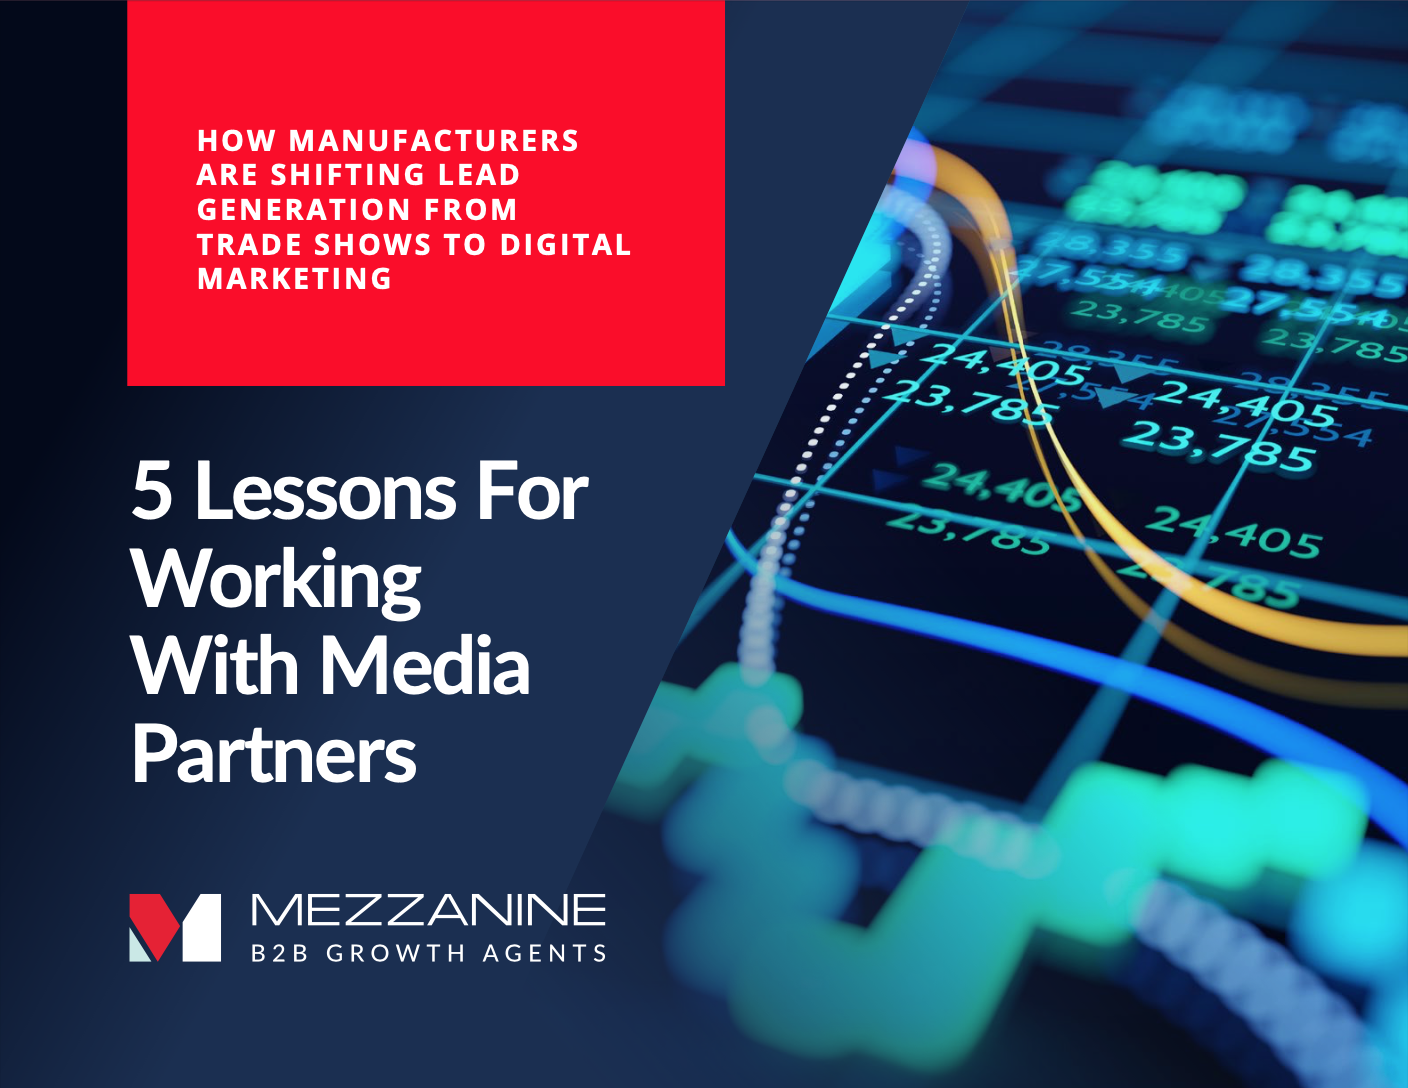 How Manufacturers Are Shifting Lead Generation From Trade Shows To Digital Marketing: 5 Lessons For Working With Media Partners